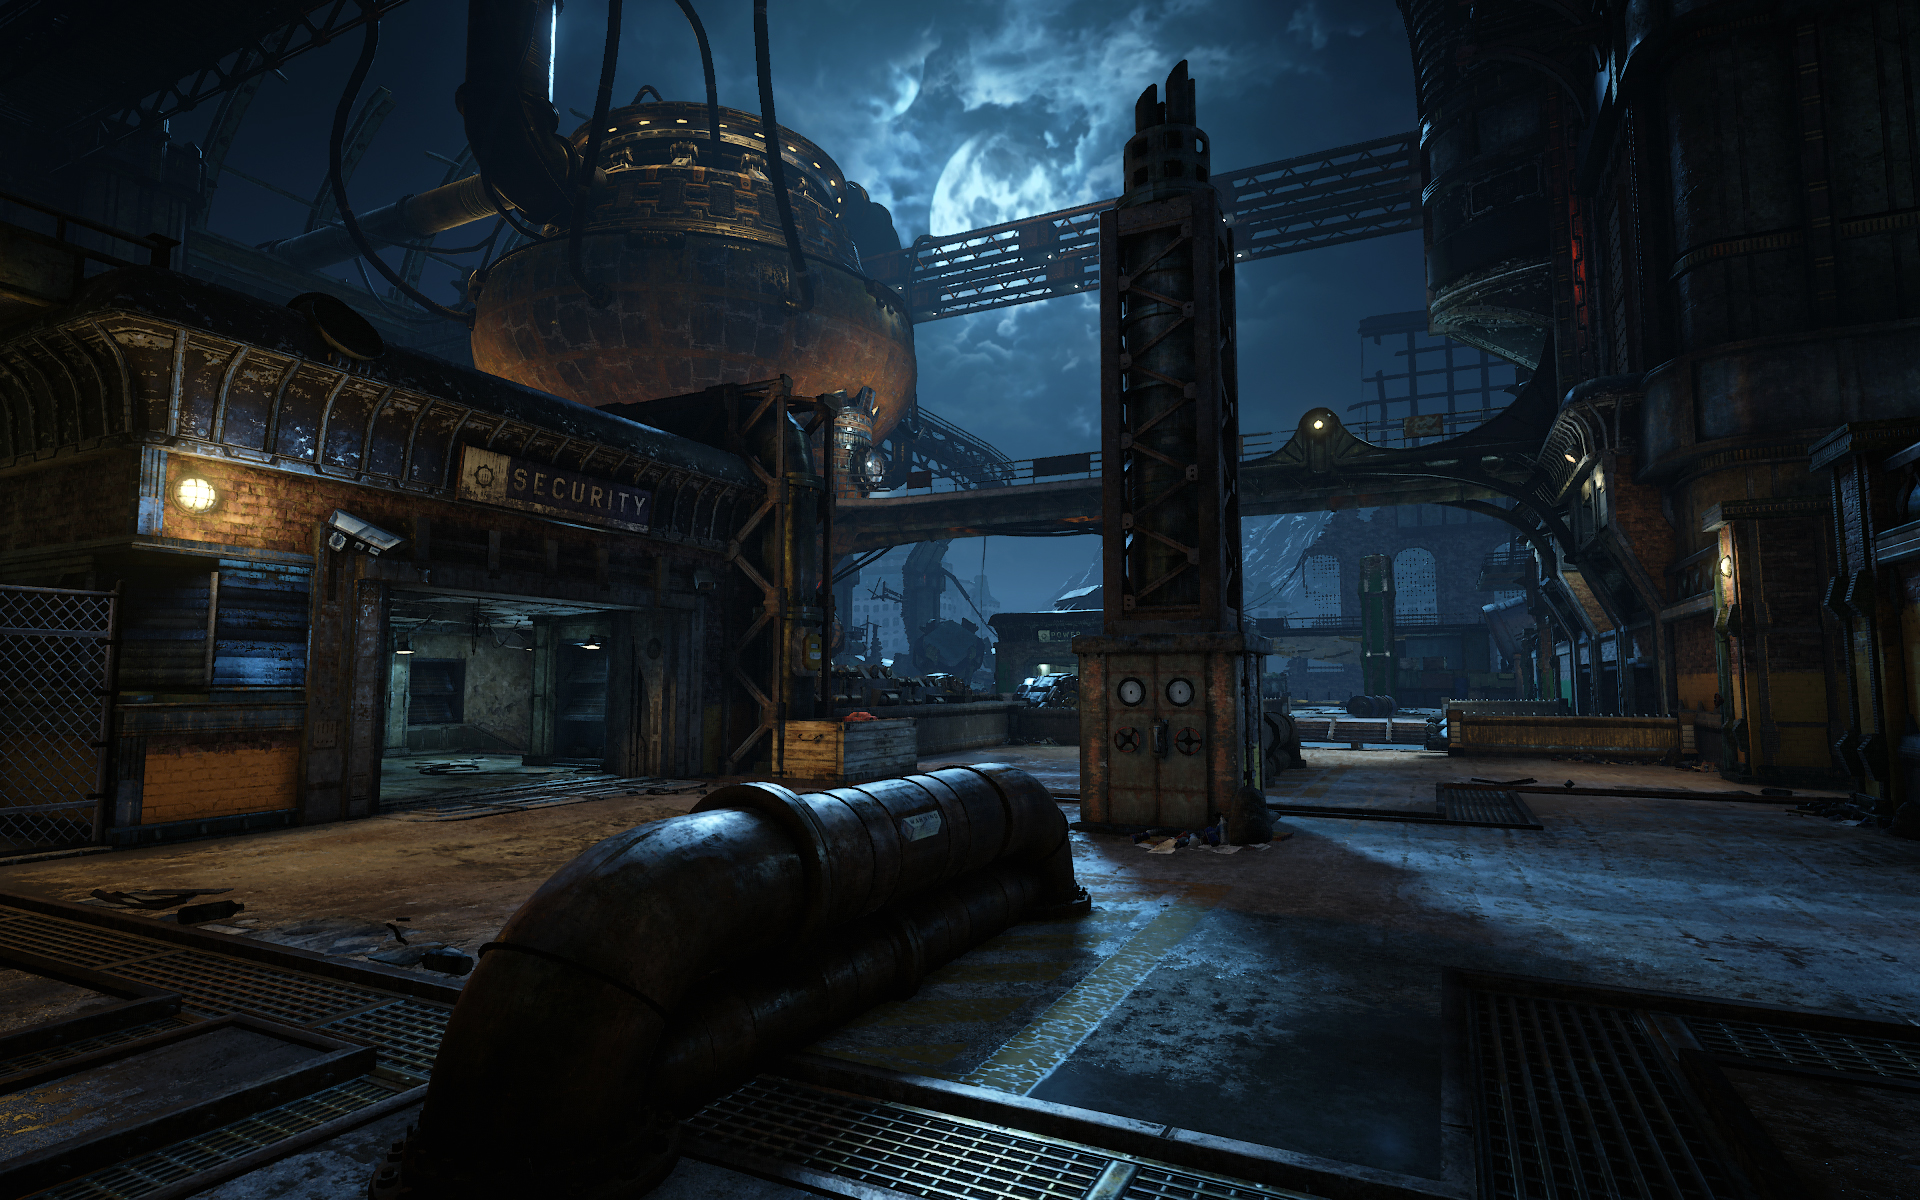 Gears of War 4: Forge MP Map Flythrough